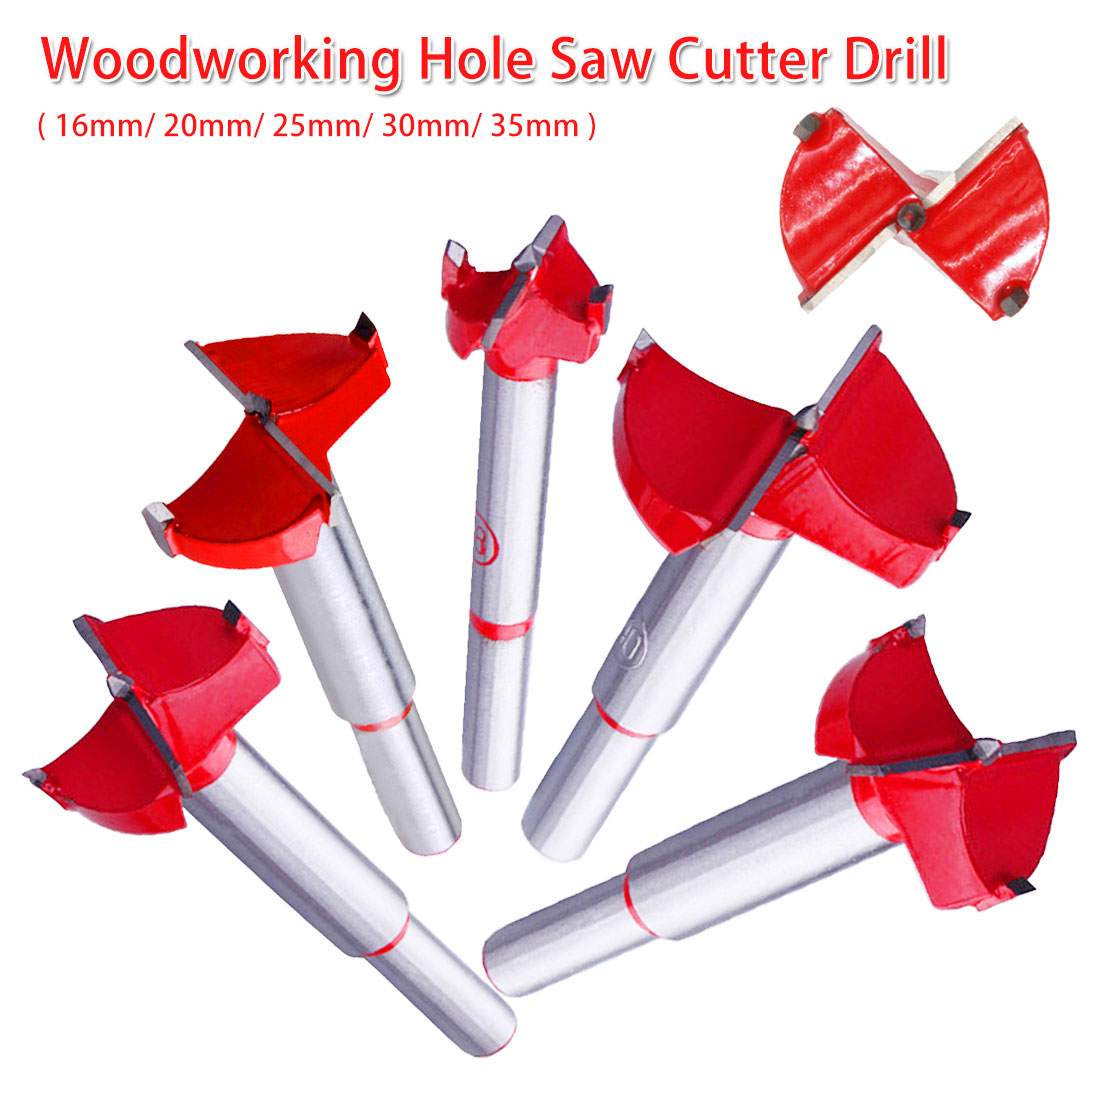 Professional Forstner Woodworking Hole Saw Cutter Alloy Hole Opener Drill Bit Flat Wing Drill 16-35mm For Wood Panel/ Cabinet